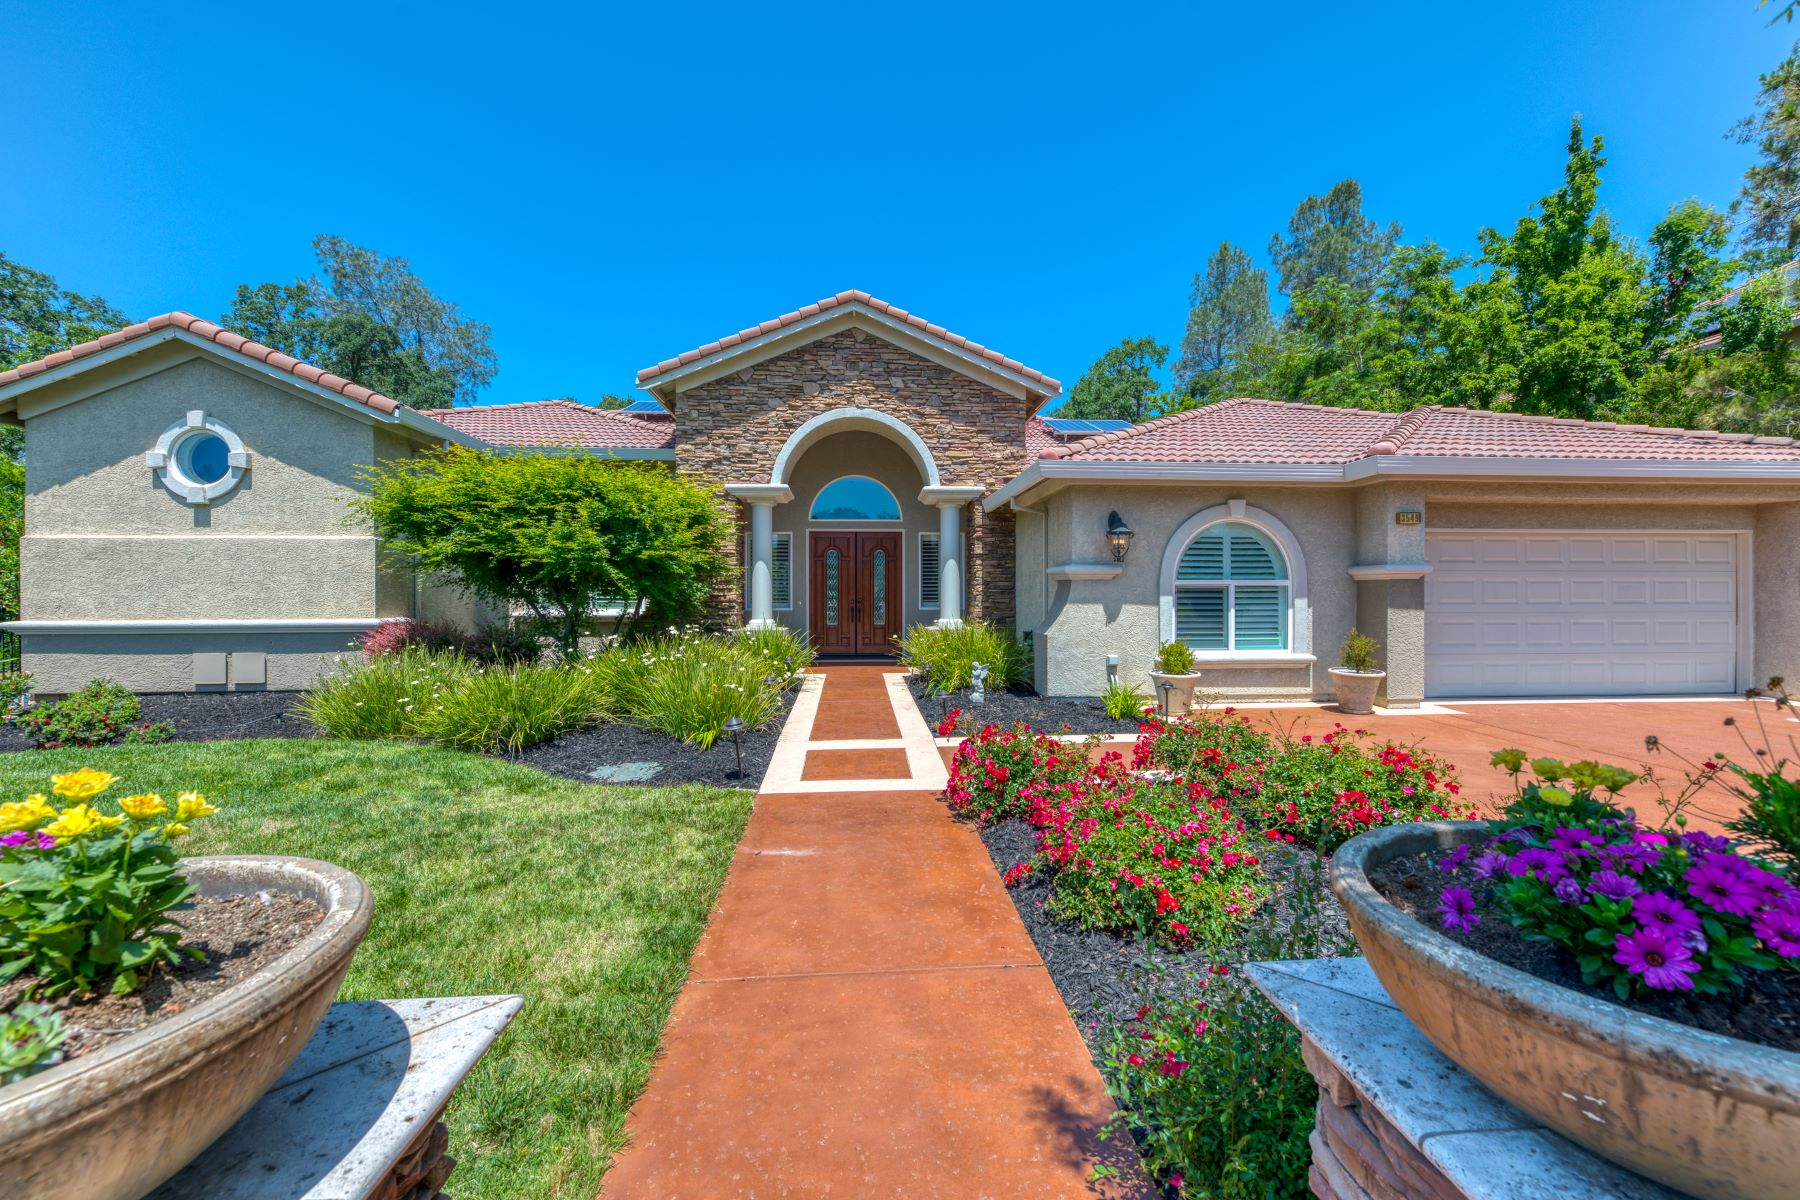 single family homes for Active at 3549 Brittany Way, El Dorado Hills, CA 95762 3549 Brittany Way El Dorado Hills, California 95762 United States